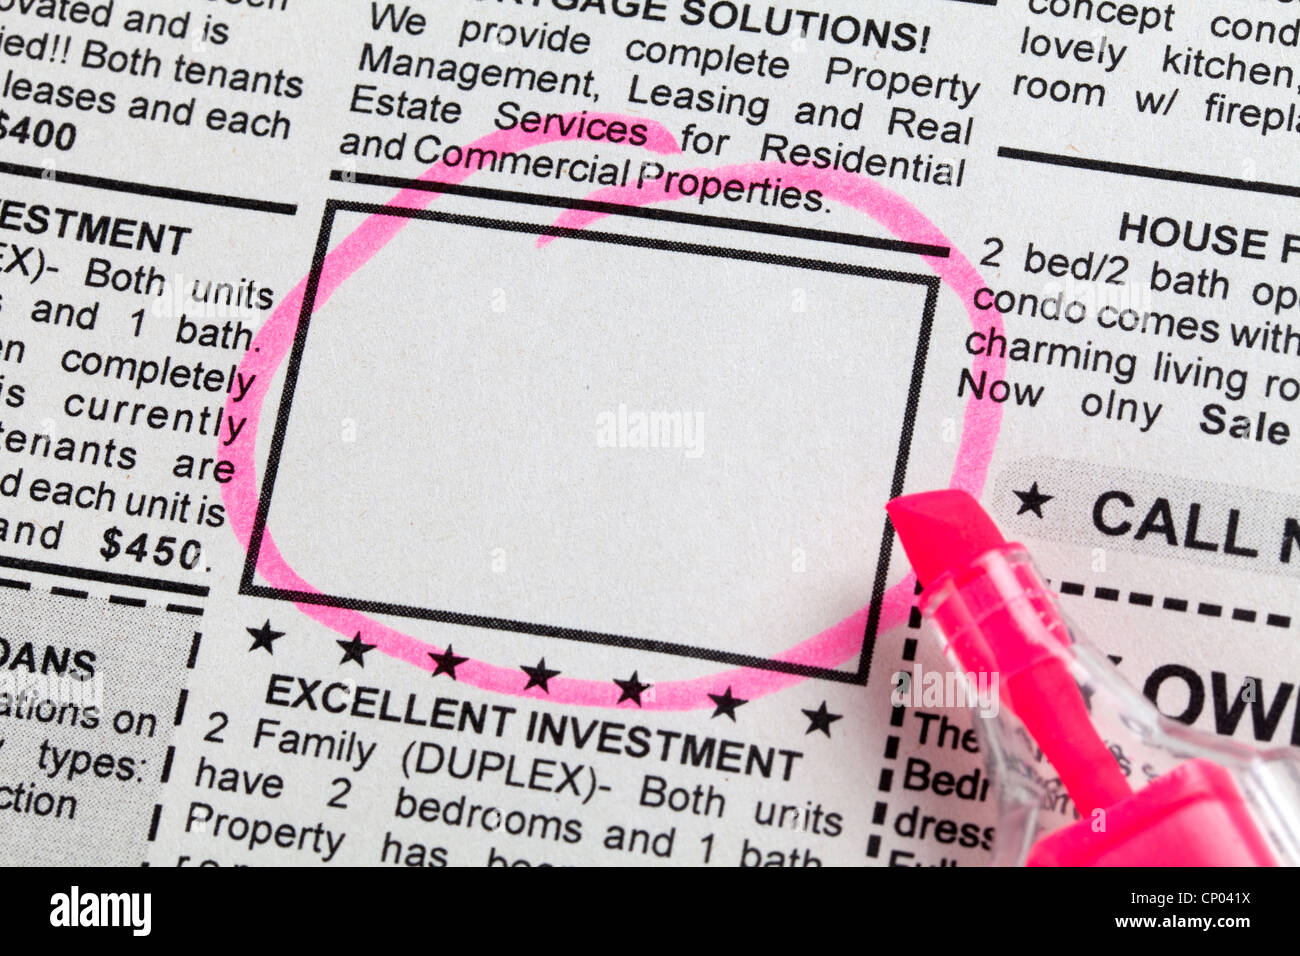 Classified Ad, newspaper, business concept. - Stock Image